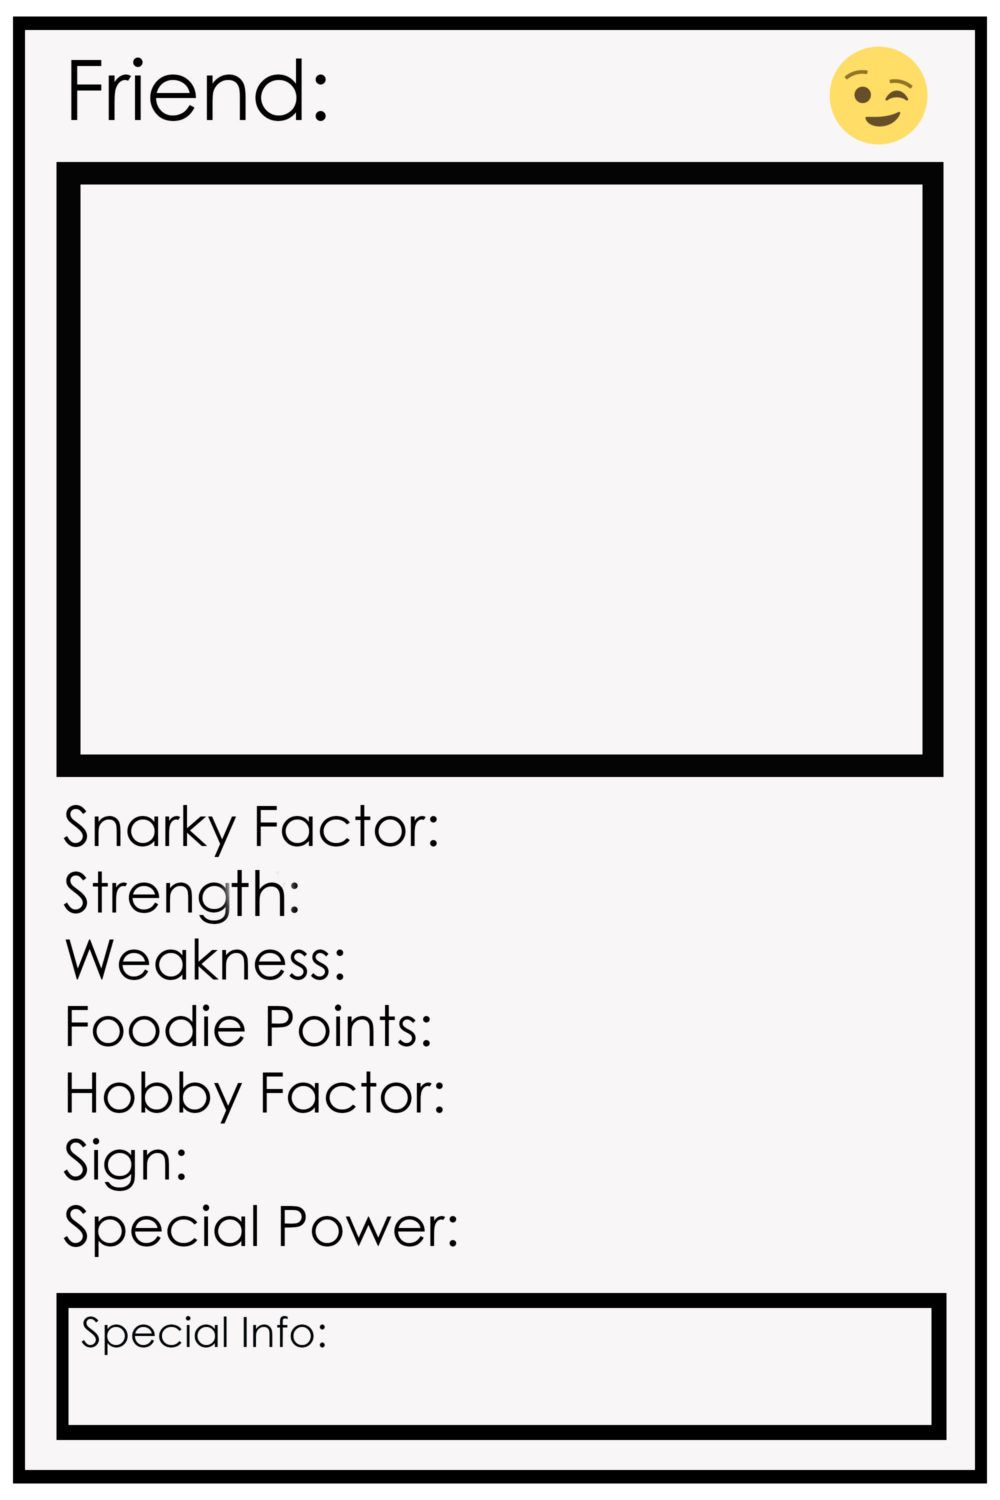 The Glamorous Free Template Blank Trading Card Template Large Size Inside Free Trading Card Te Trading Card Template Baseball Card Template Card Templates Free